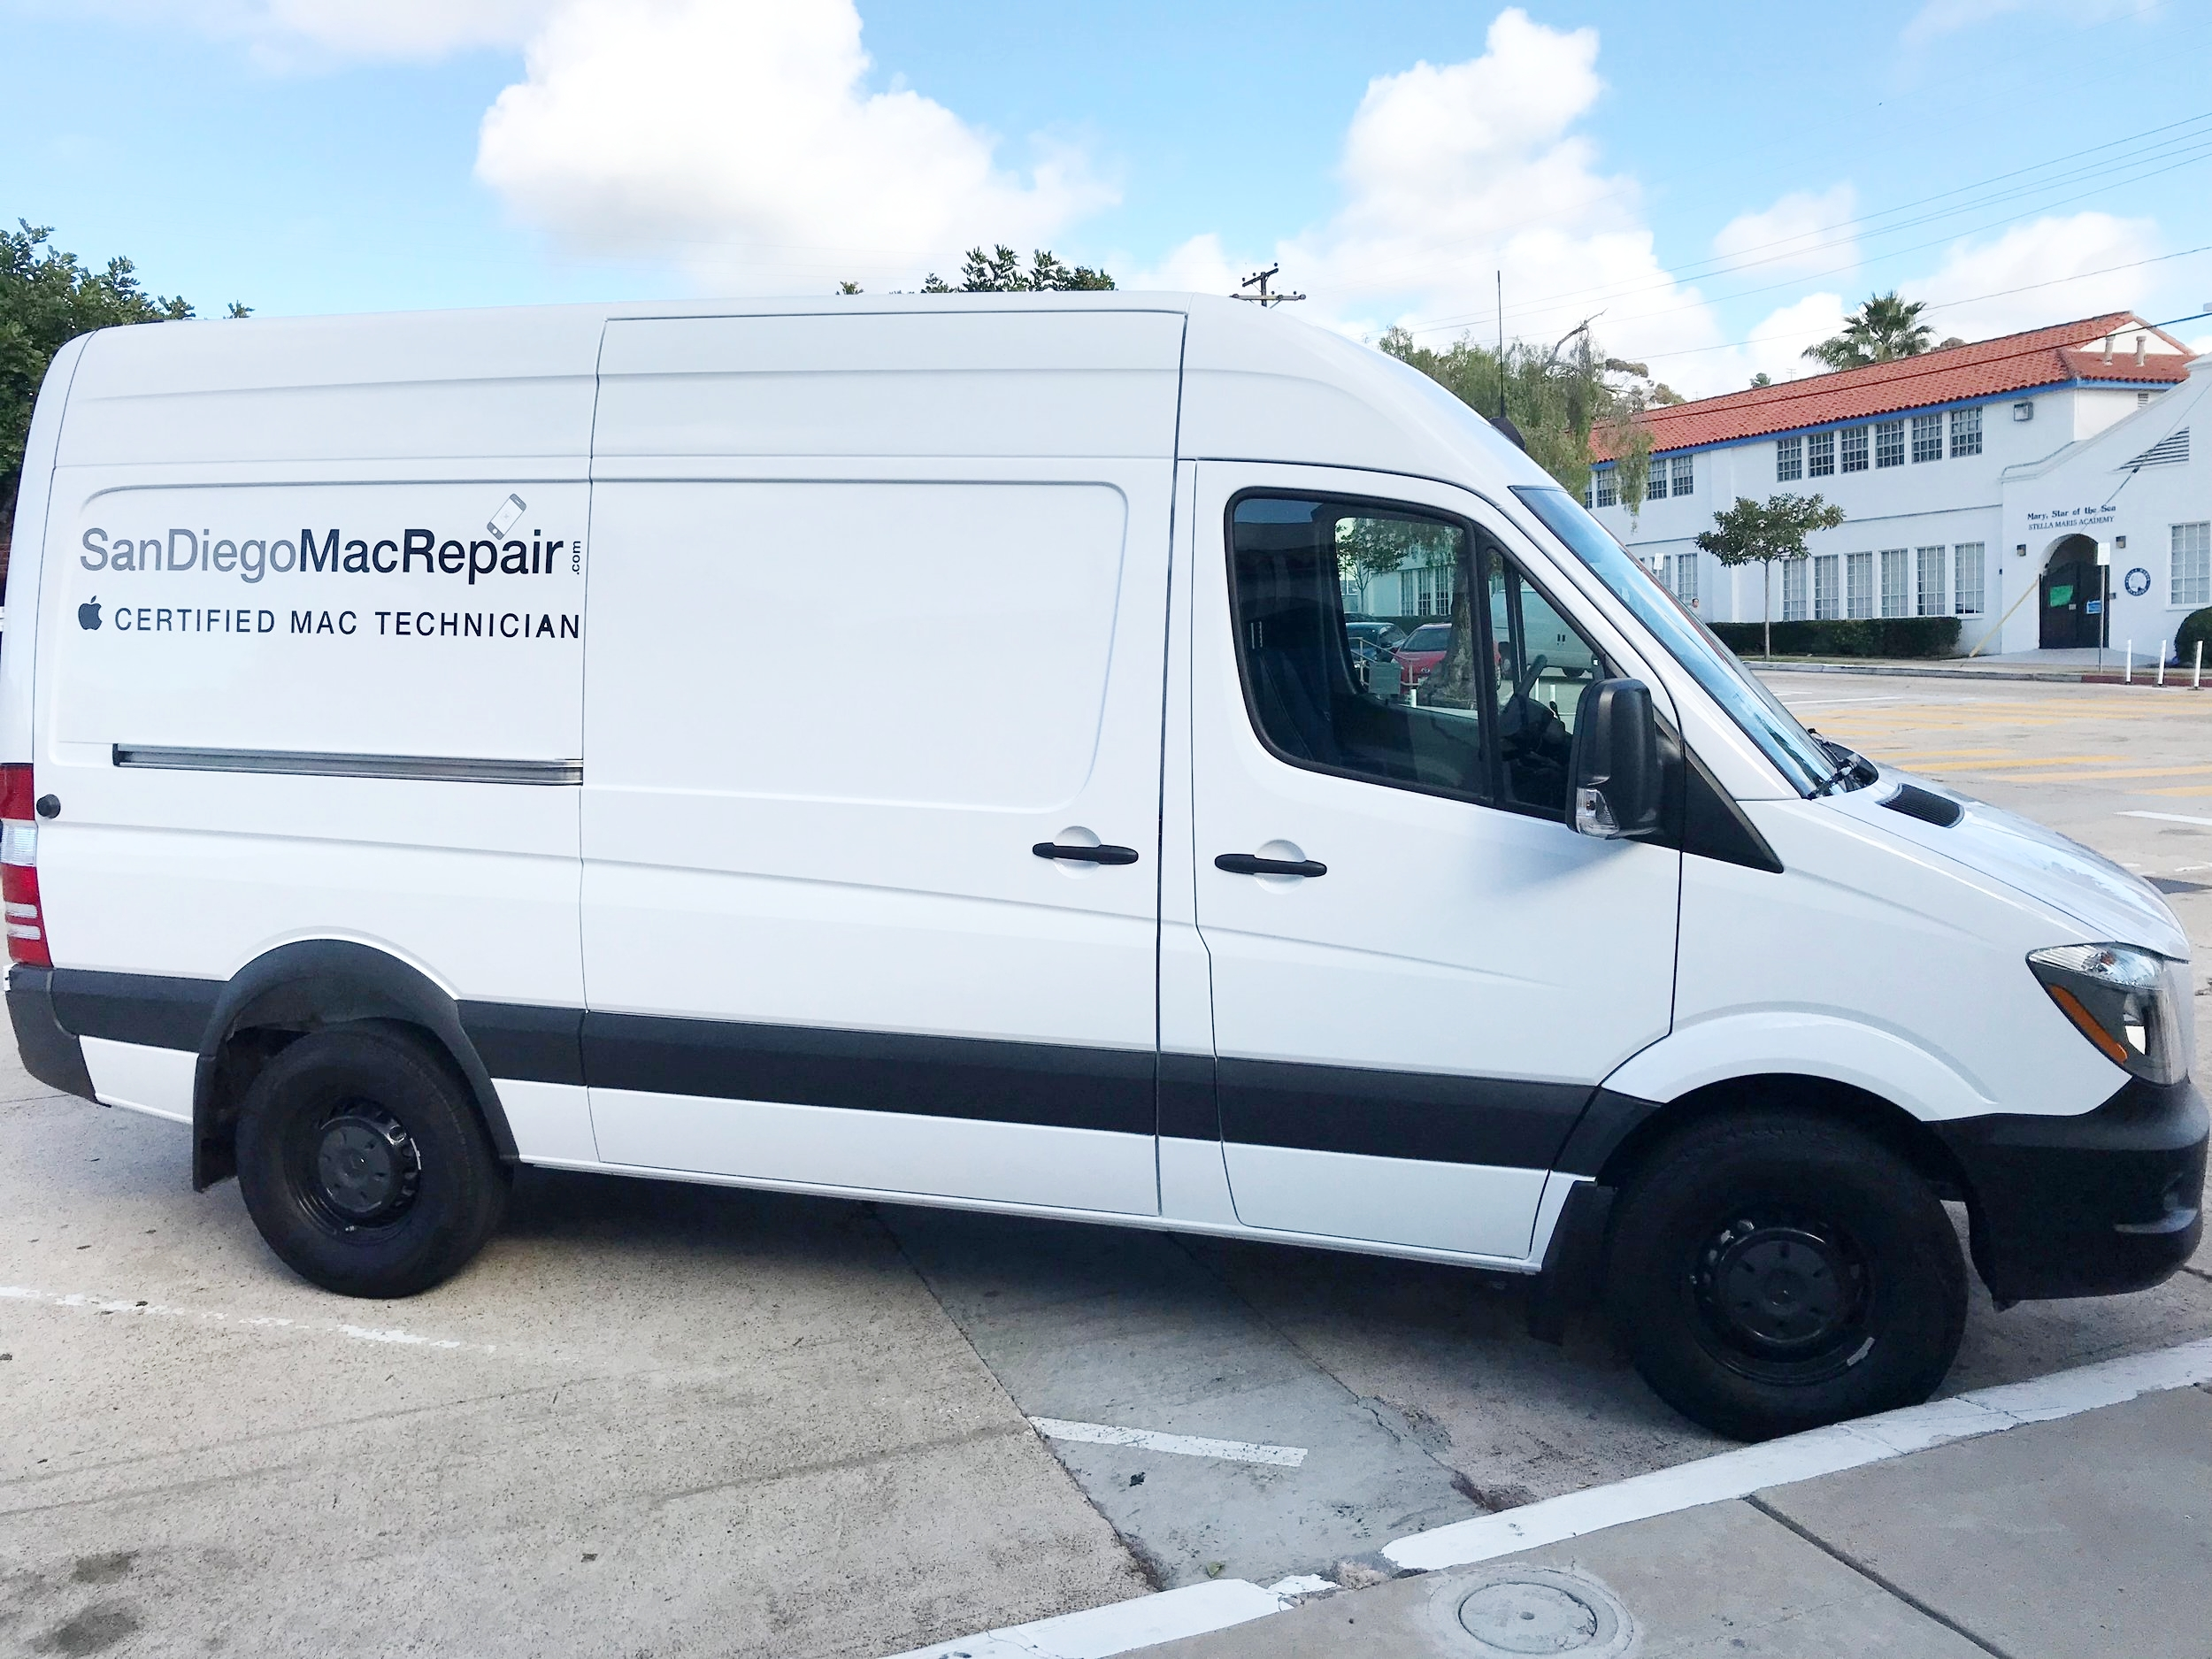 San Diego Mac Repair mobile iPhone iPad Mac repair service including Ring doorbell installation service around La Jolla 92037 and 5 miles. Also offering one on one Mac support in your home business. Install wifi mesh network.